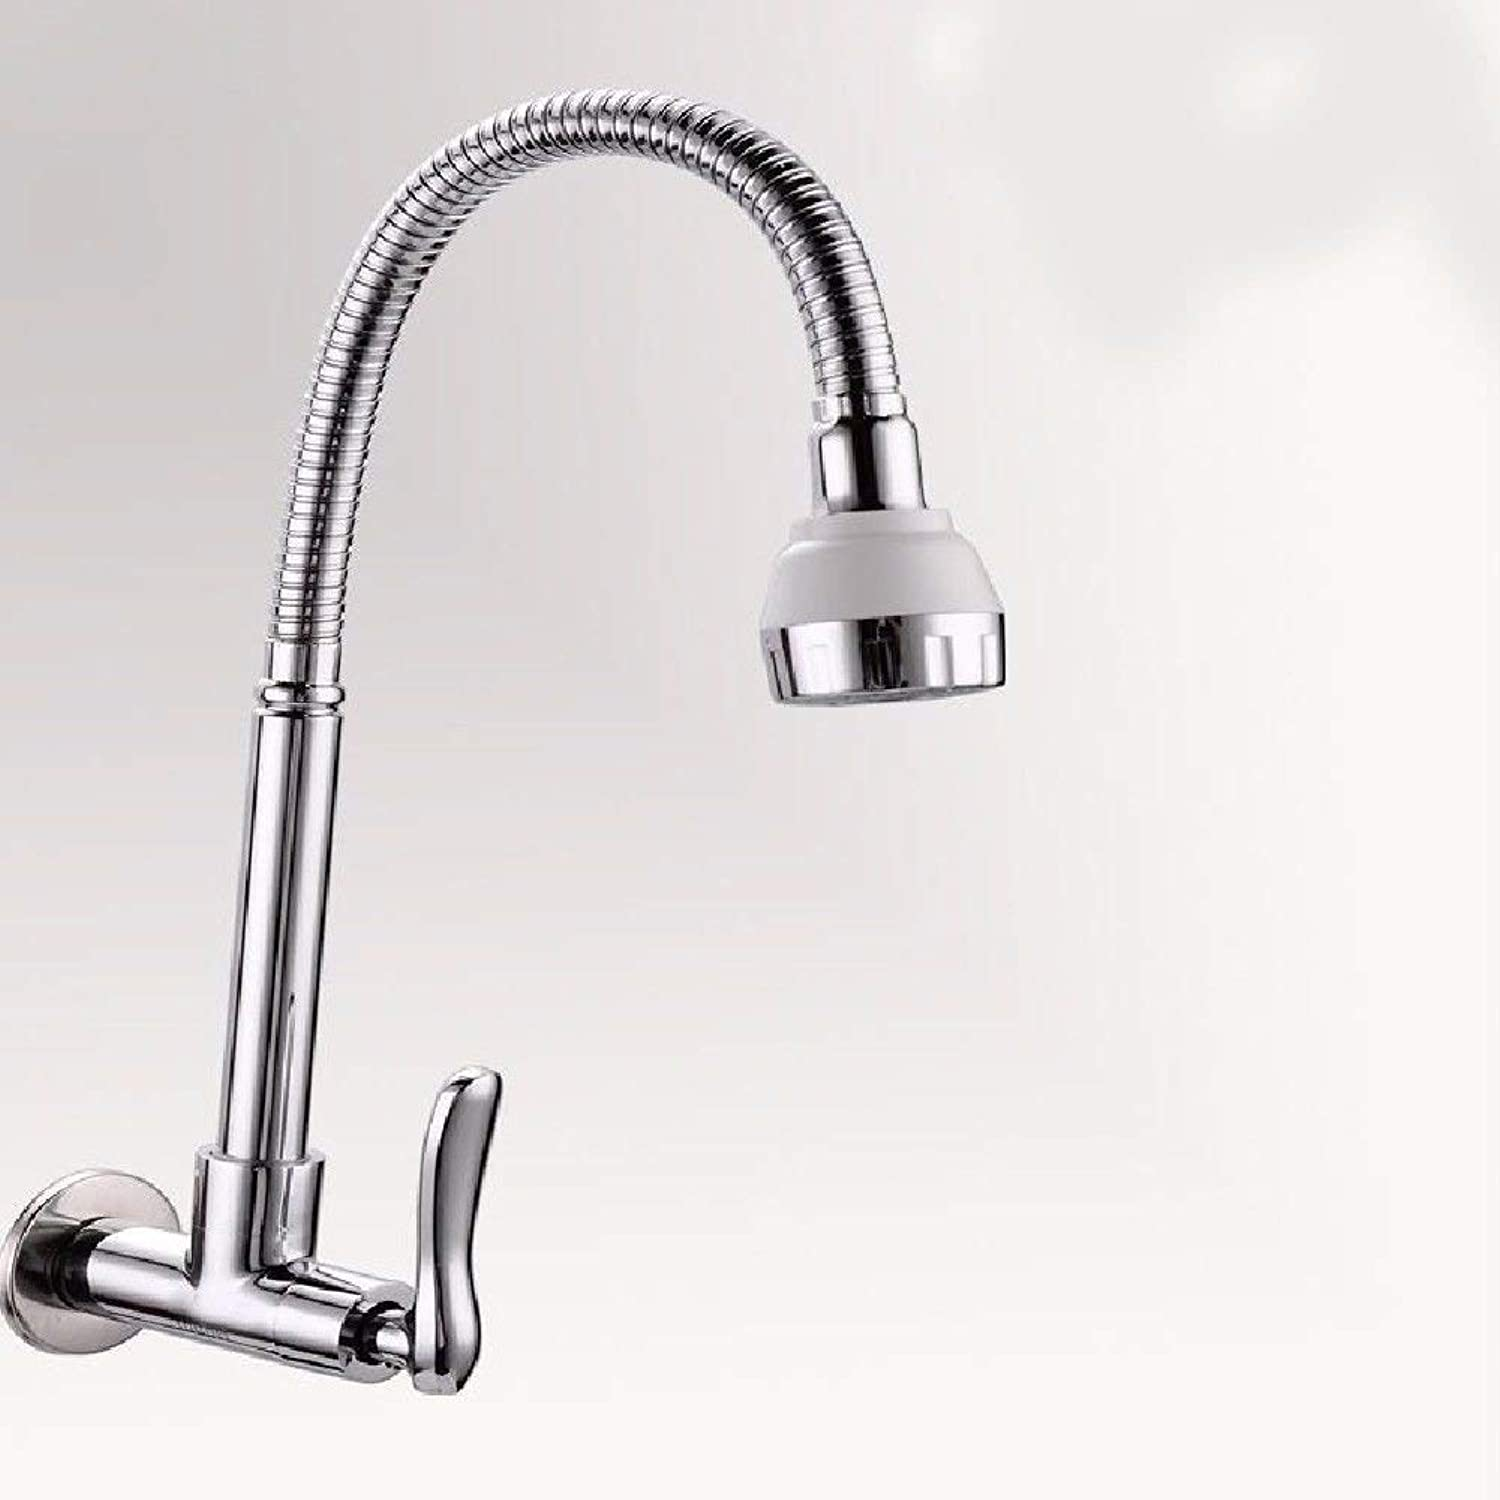 Oudan Kitchen bath basin sink mixer tap faucet solid brass wall mount only cold water faucet sink faucet (color   -, Size   -)